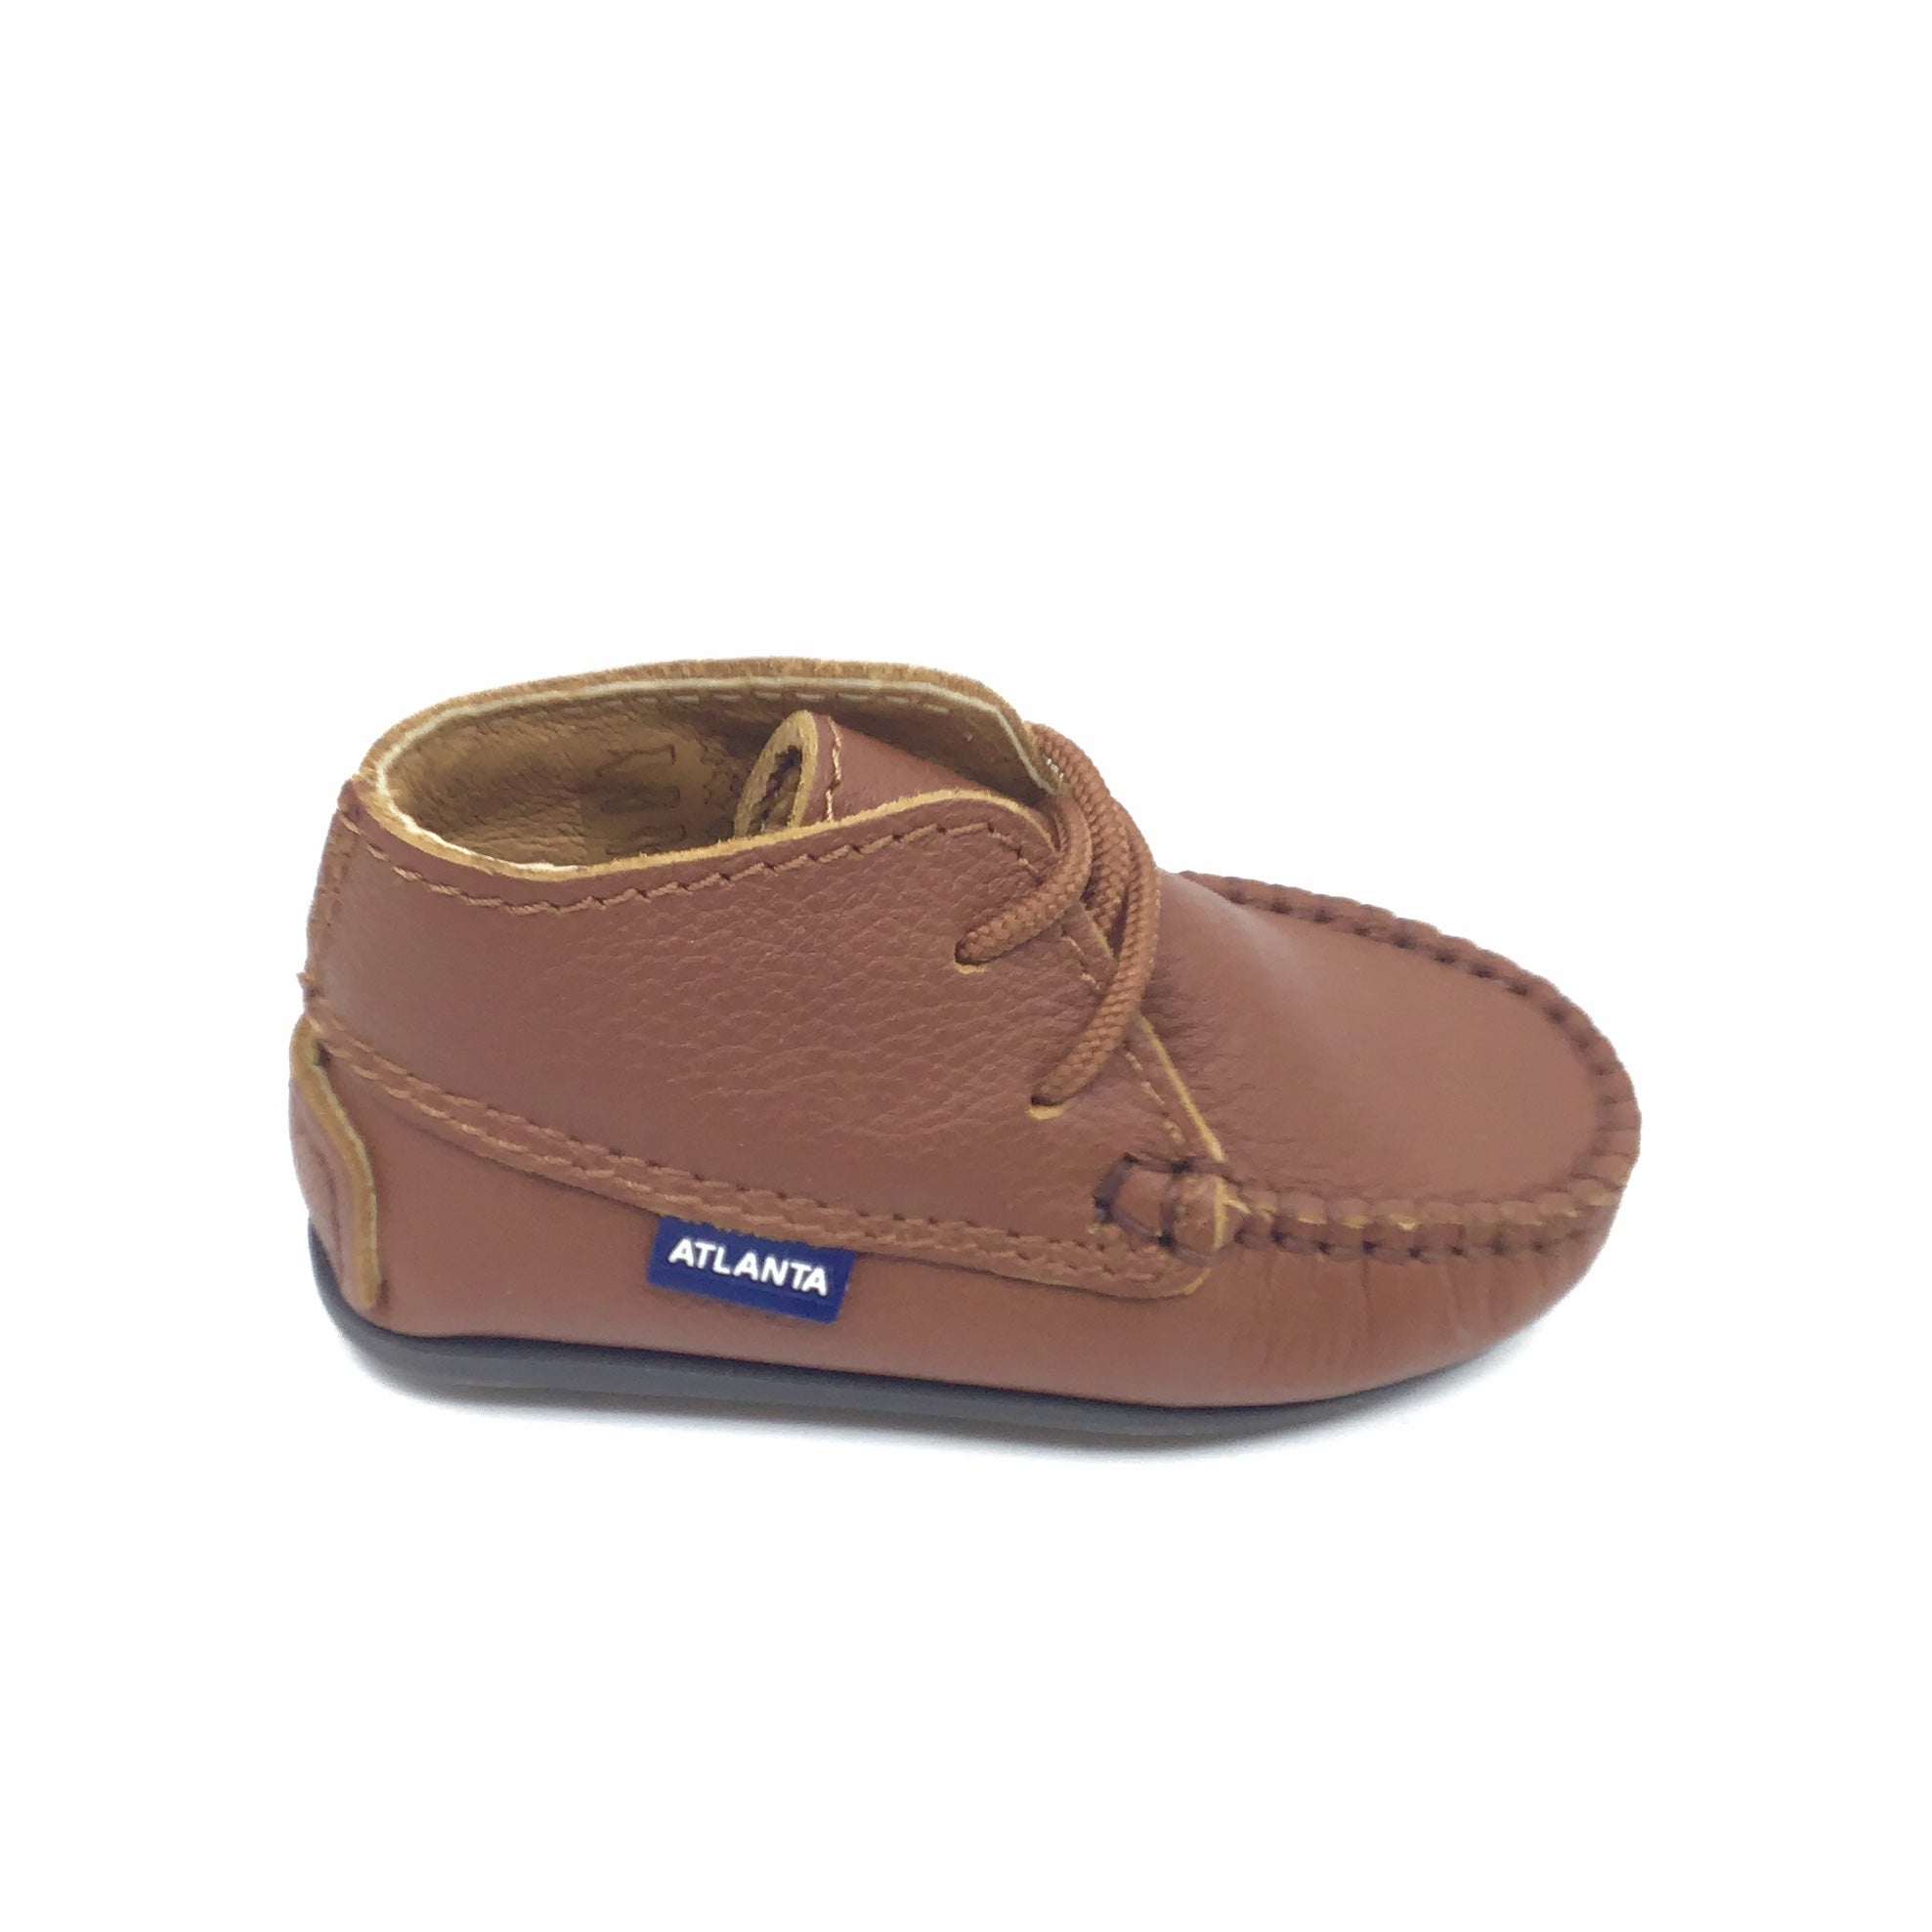 Atlanta Brown Baby Shoe